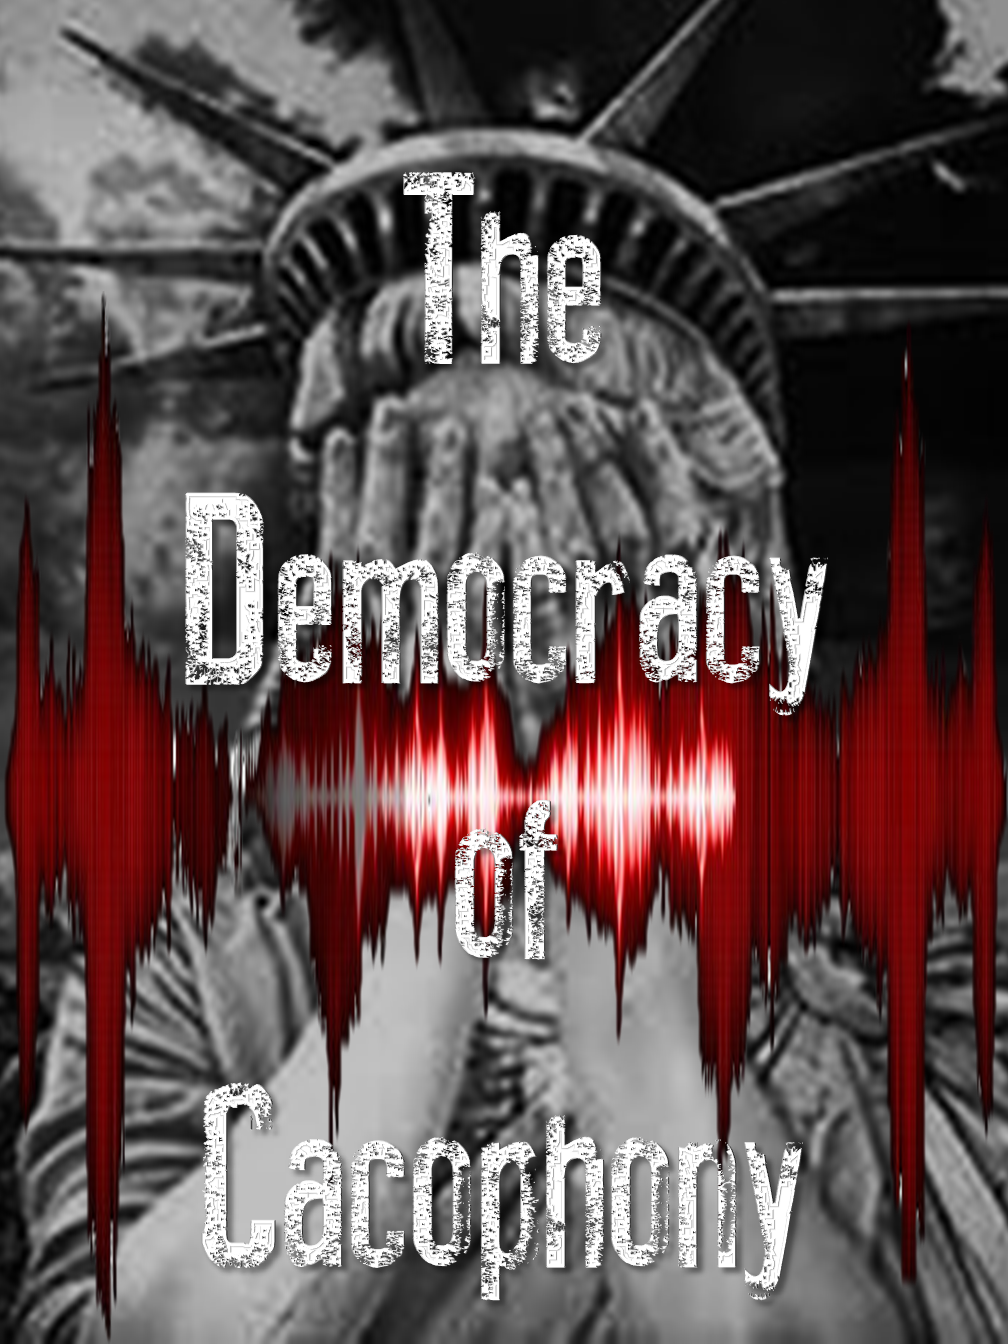 The Democracy of Cacophony